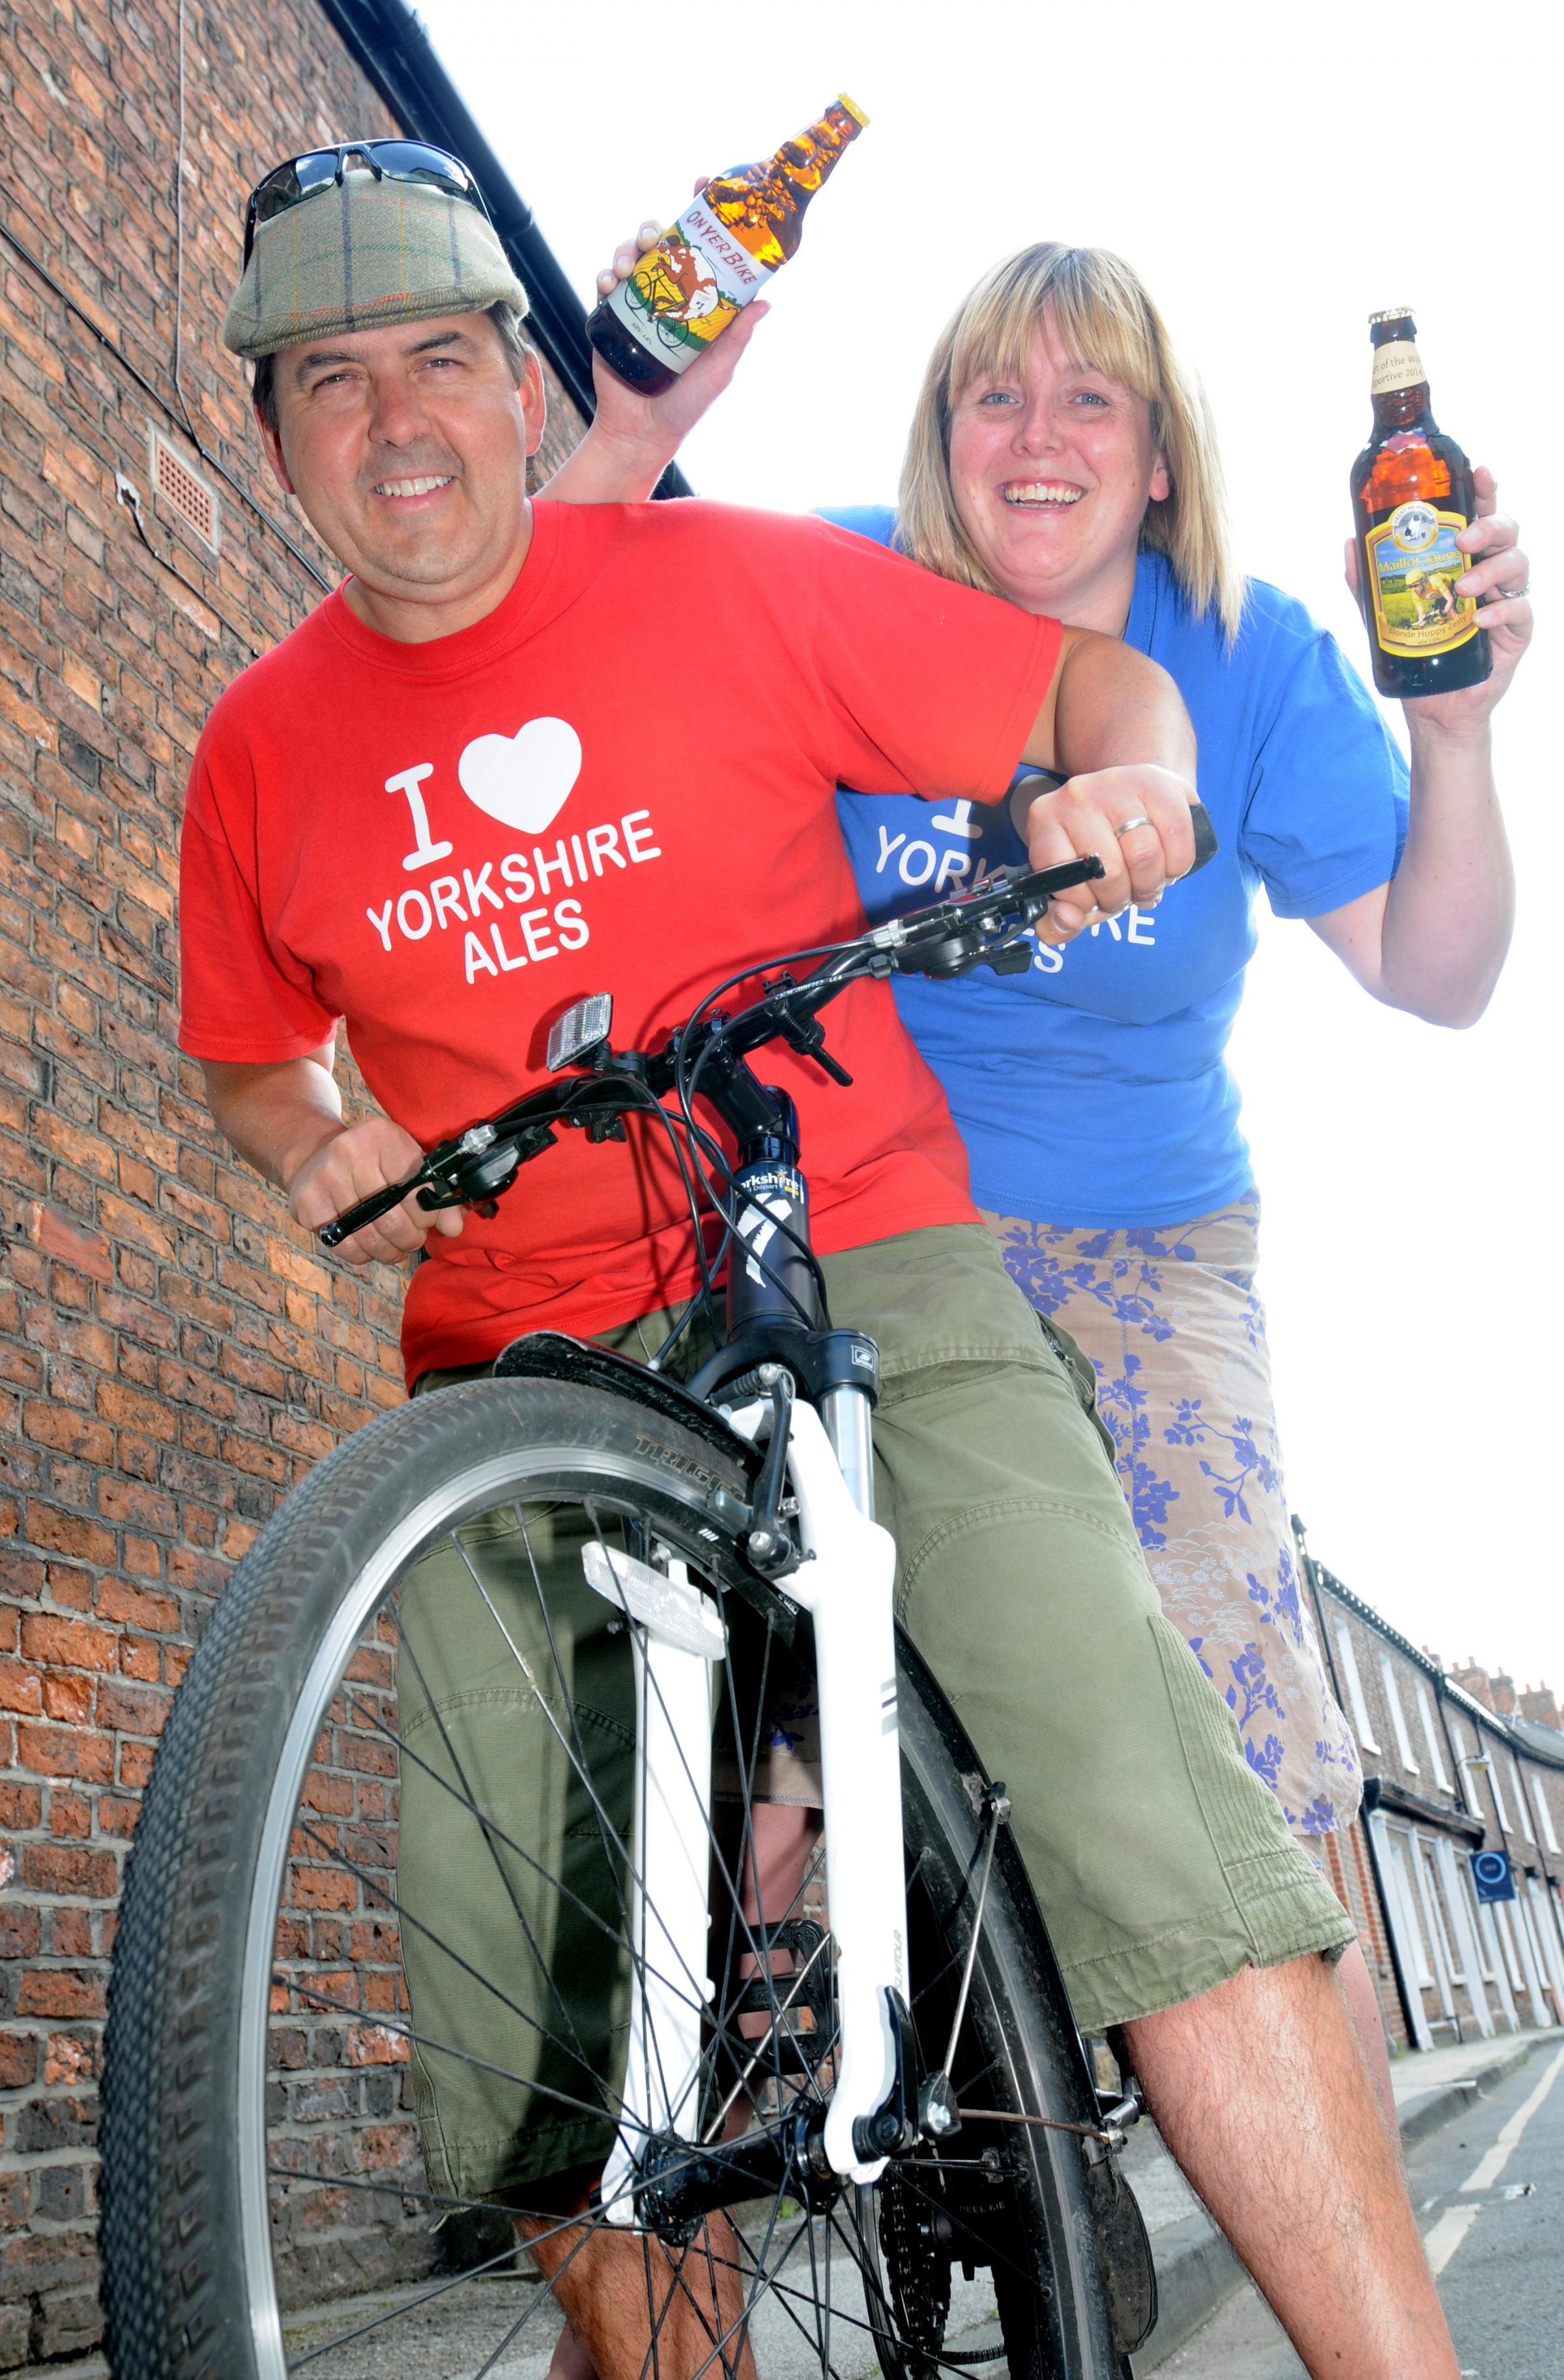 Adrian and Vicky Pettitt, from Yorkshire Ales  who have launched beers to commemorate the Yorkshire Grand Depart